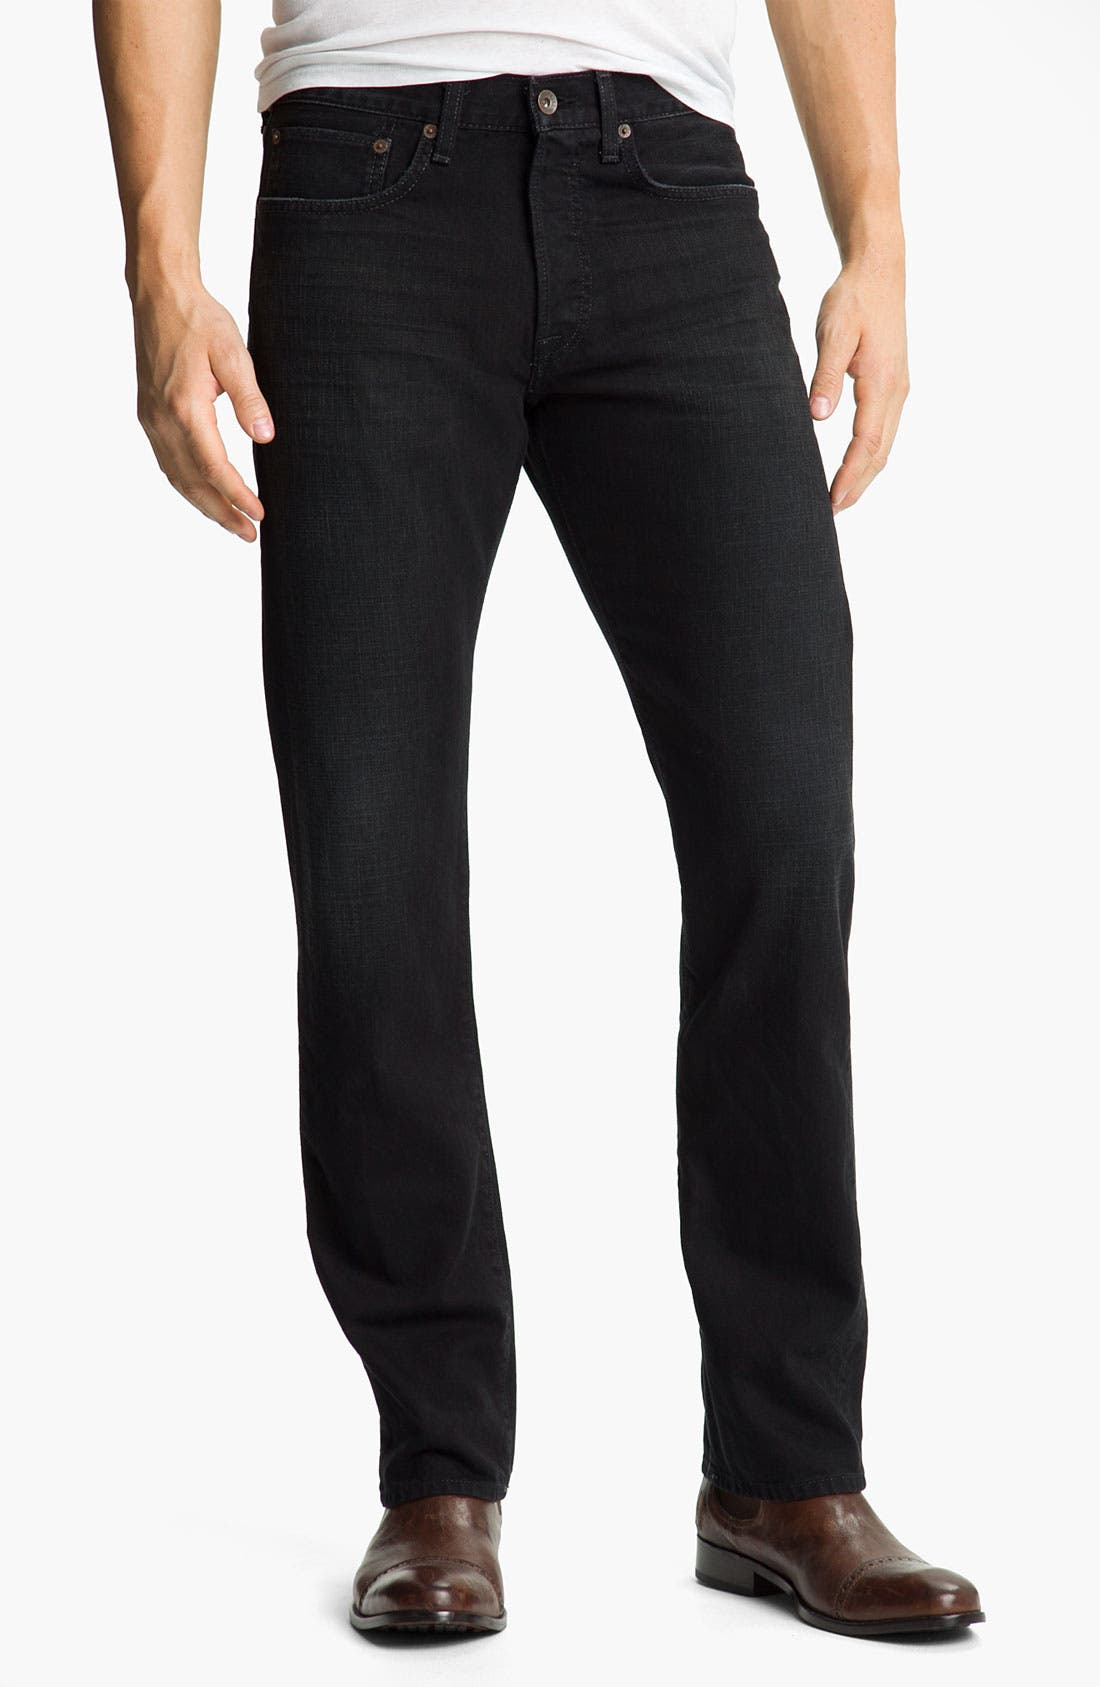 Alternate Image 1 Selected - Lucky Brand '121 Heritage' Slim Straight Leg Jeans (Ol' Subway)